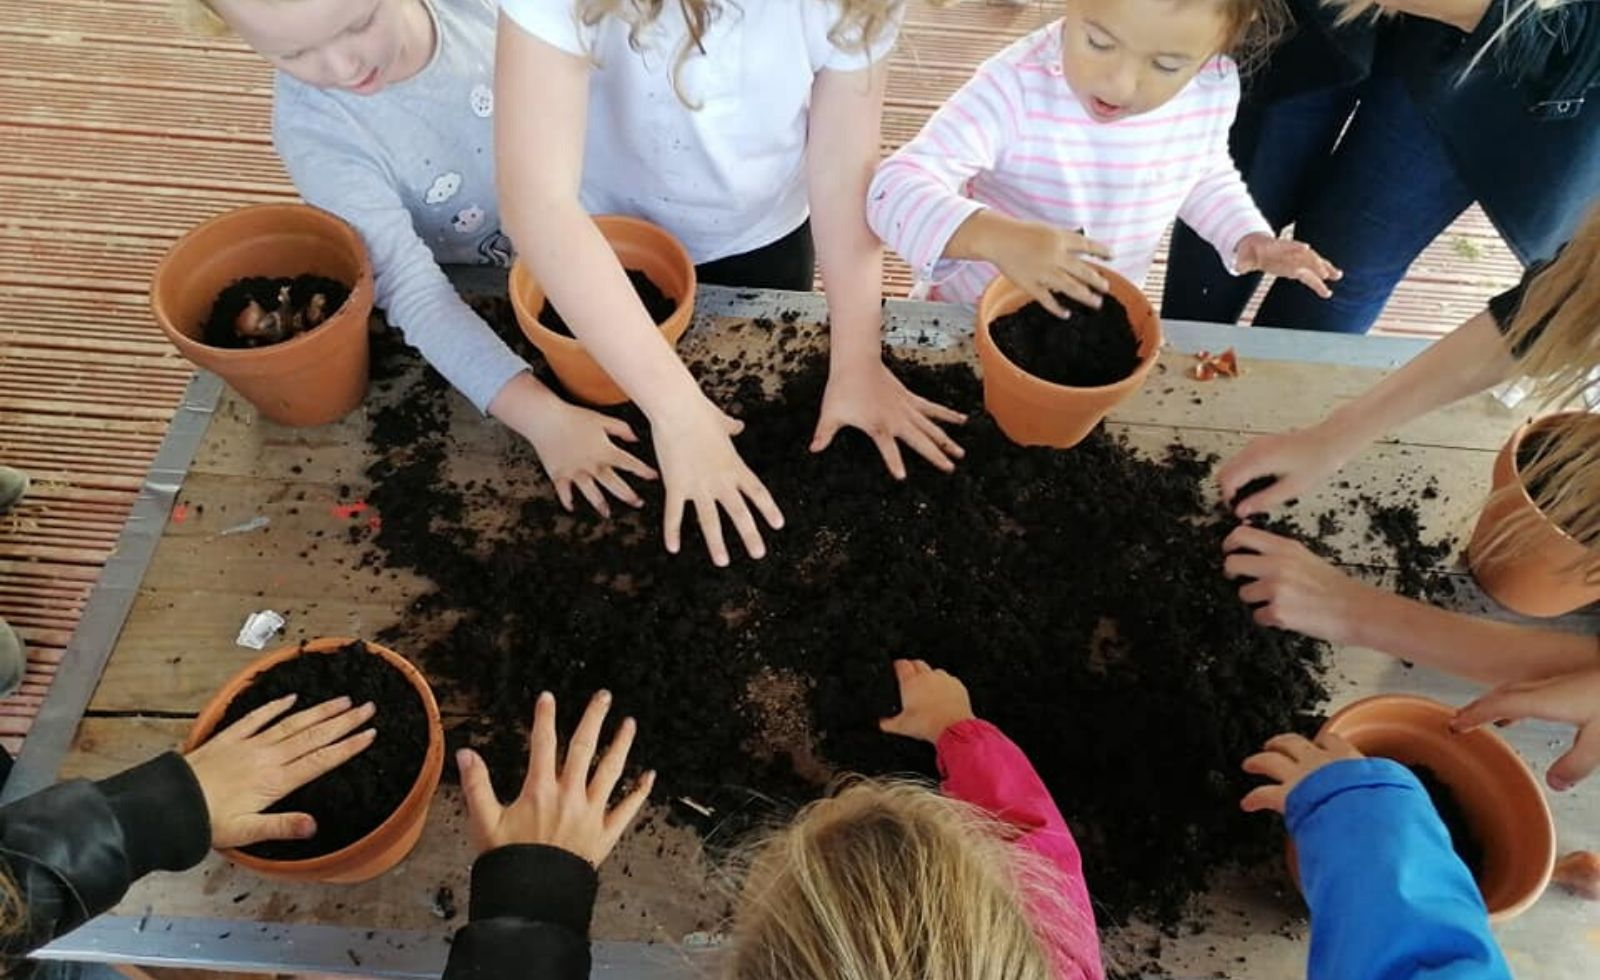 children's hands playing with soil